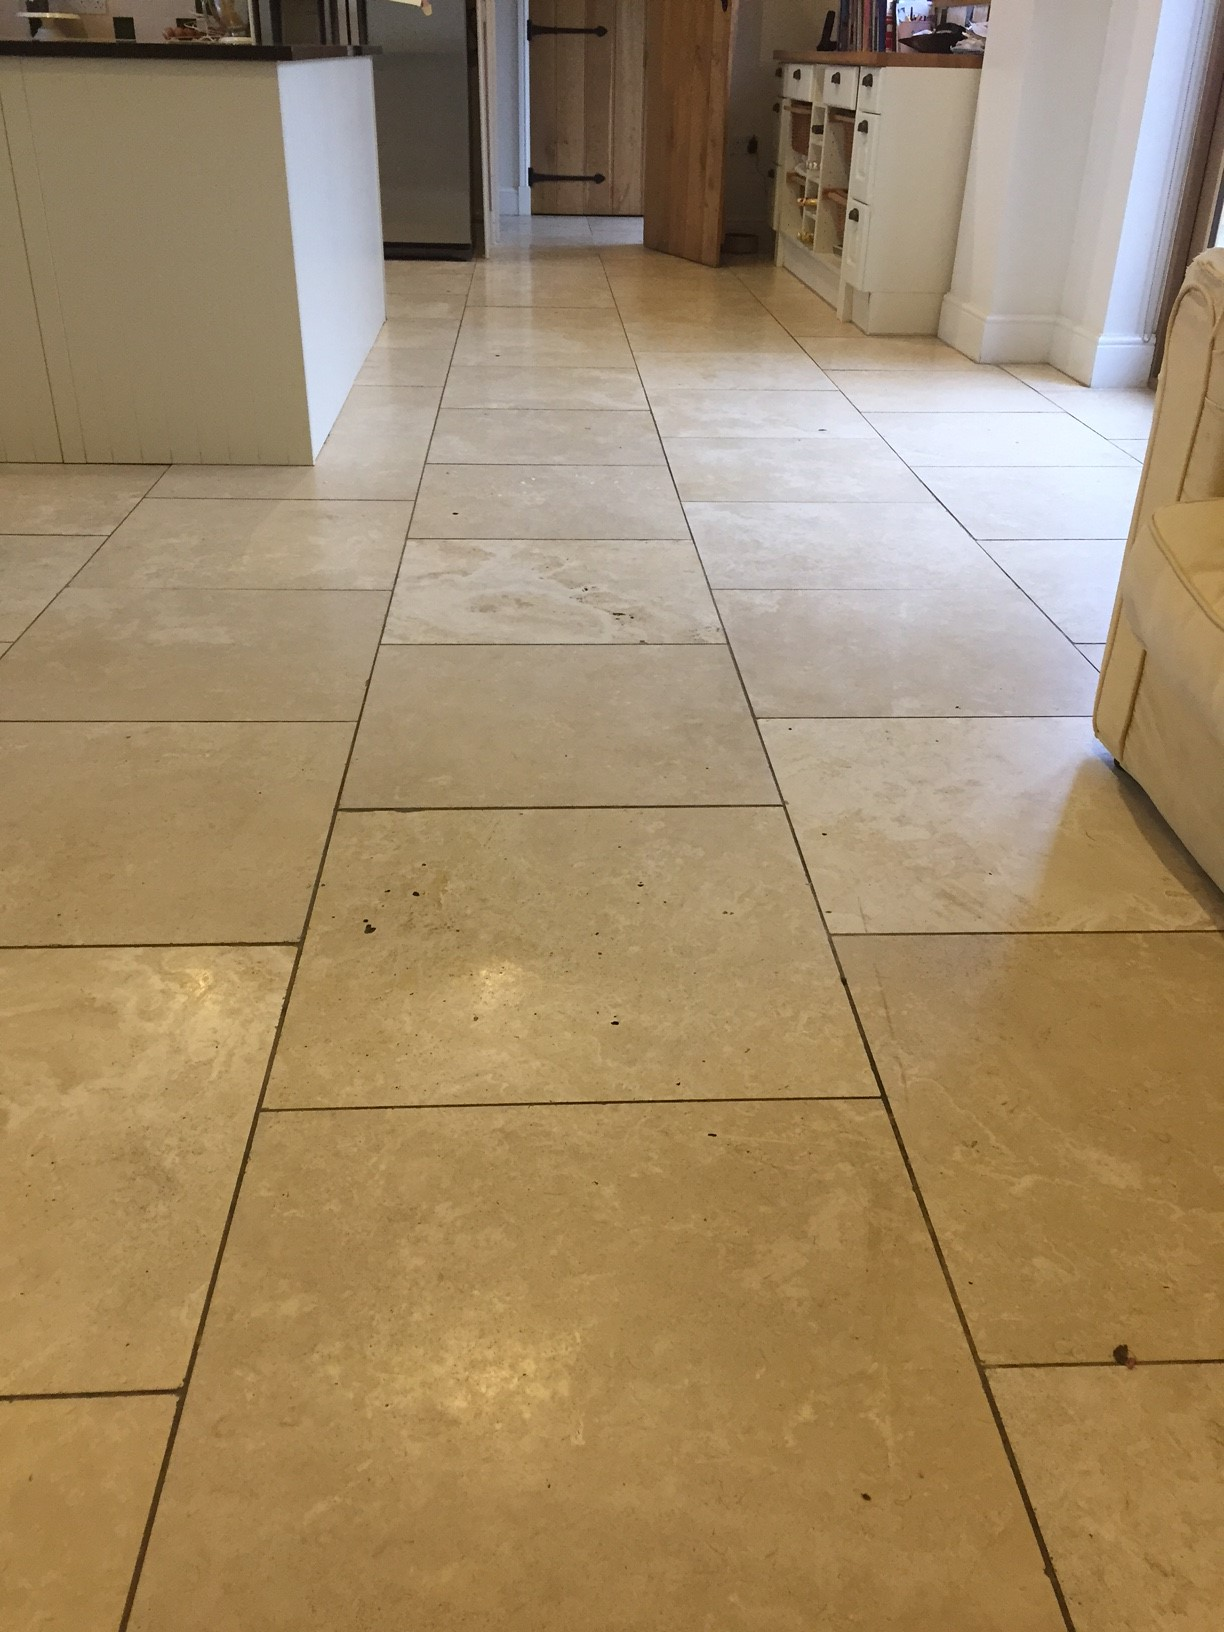 Travertine Posts Stone Cleaning And Polishing Tips For Travertine Floors Information Tips